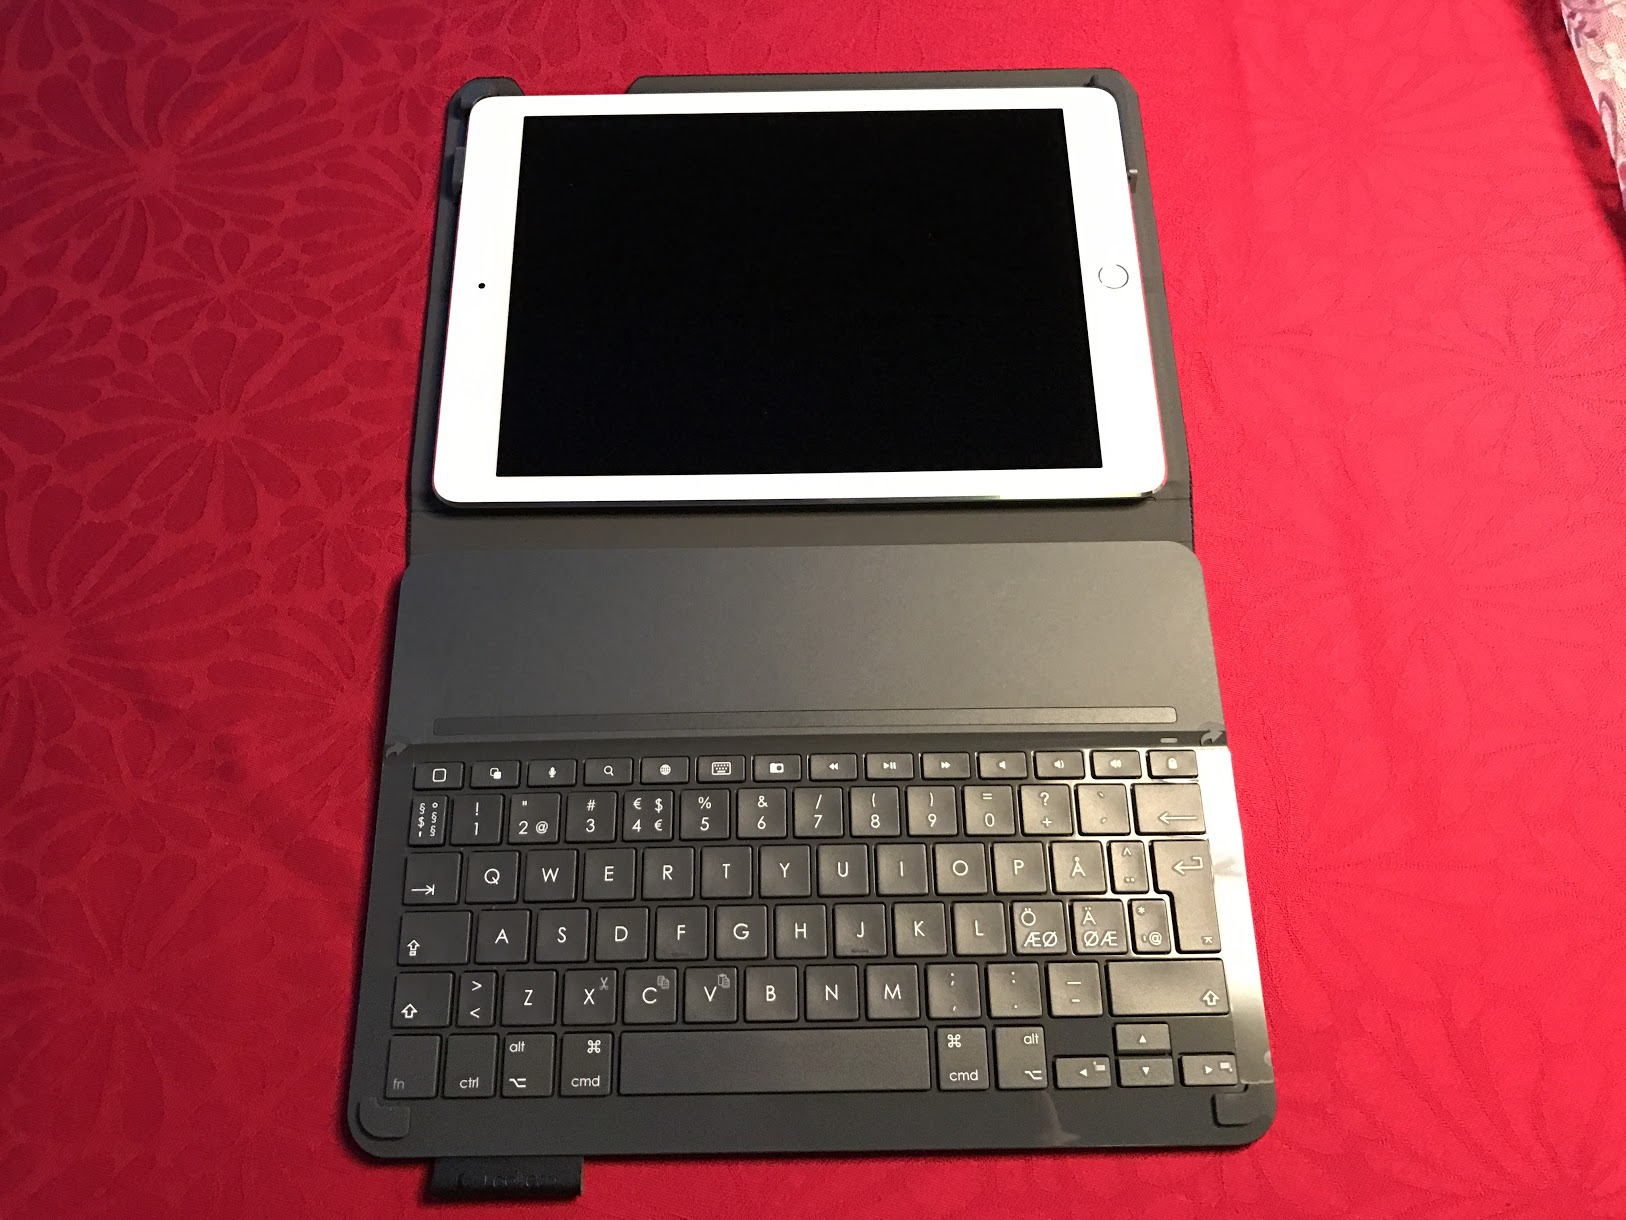 Keyboard og Ipad Air 2